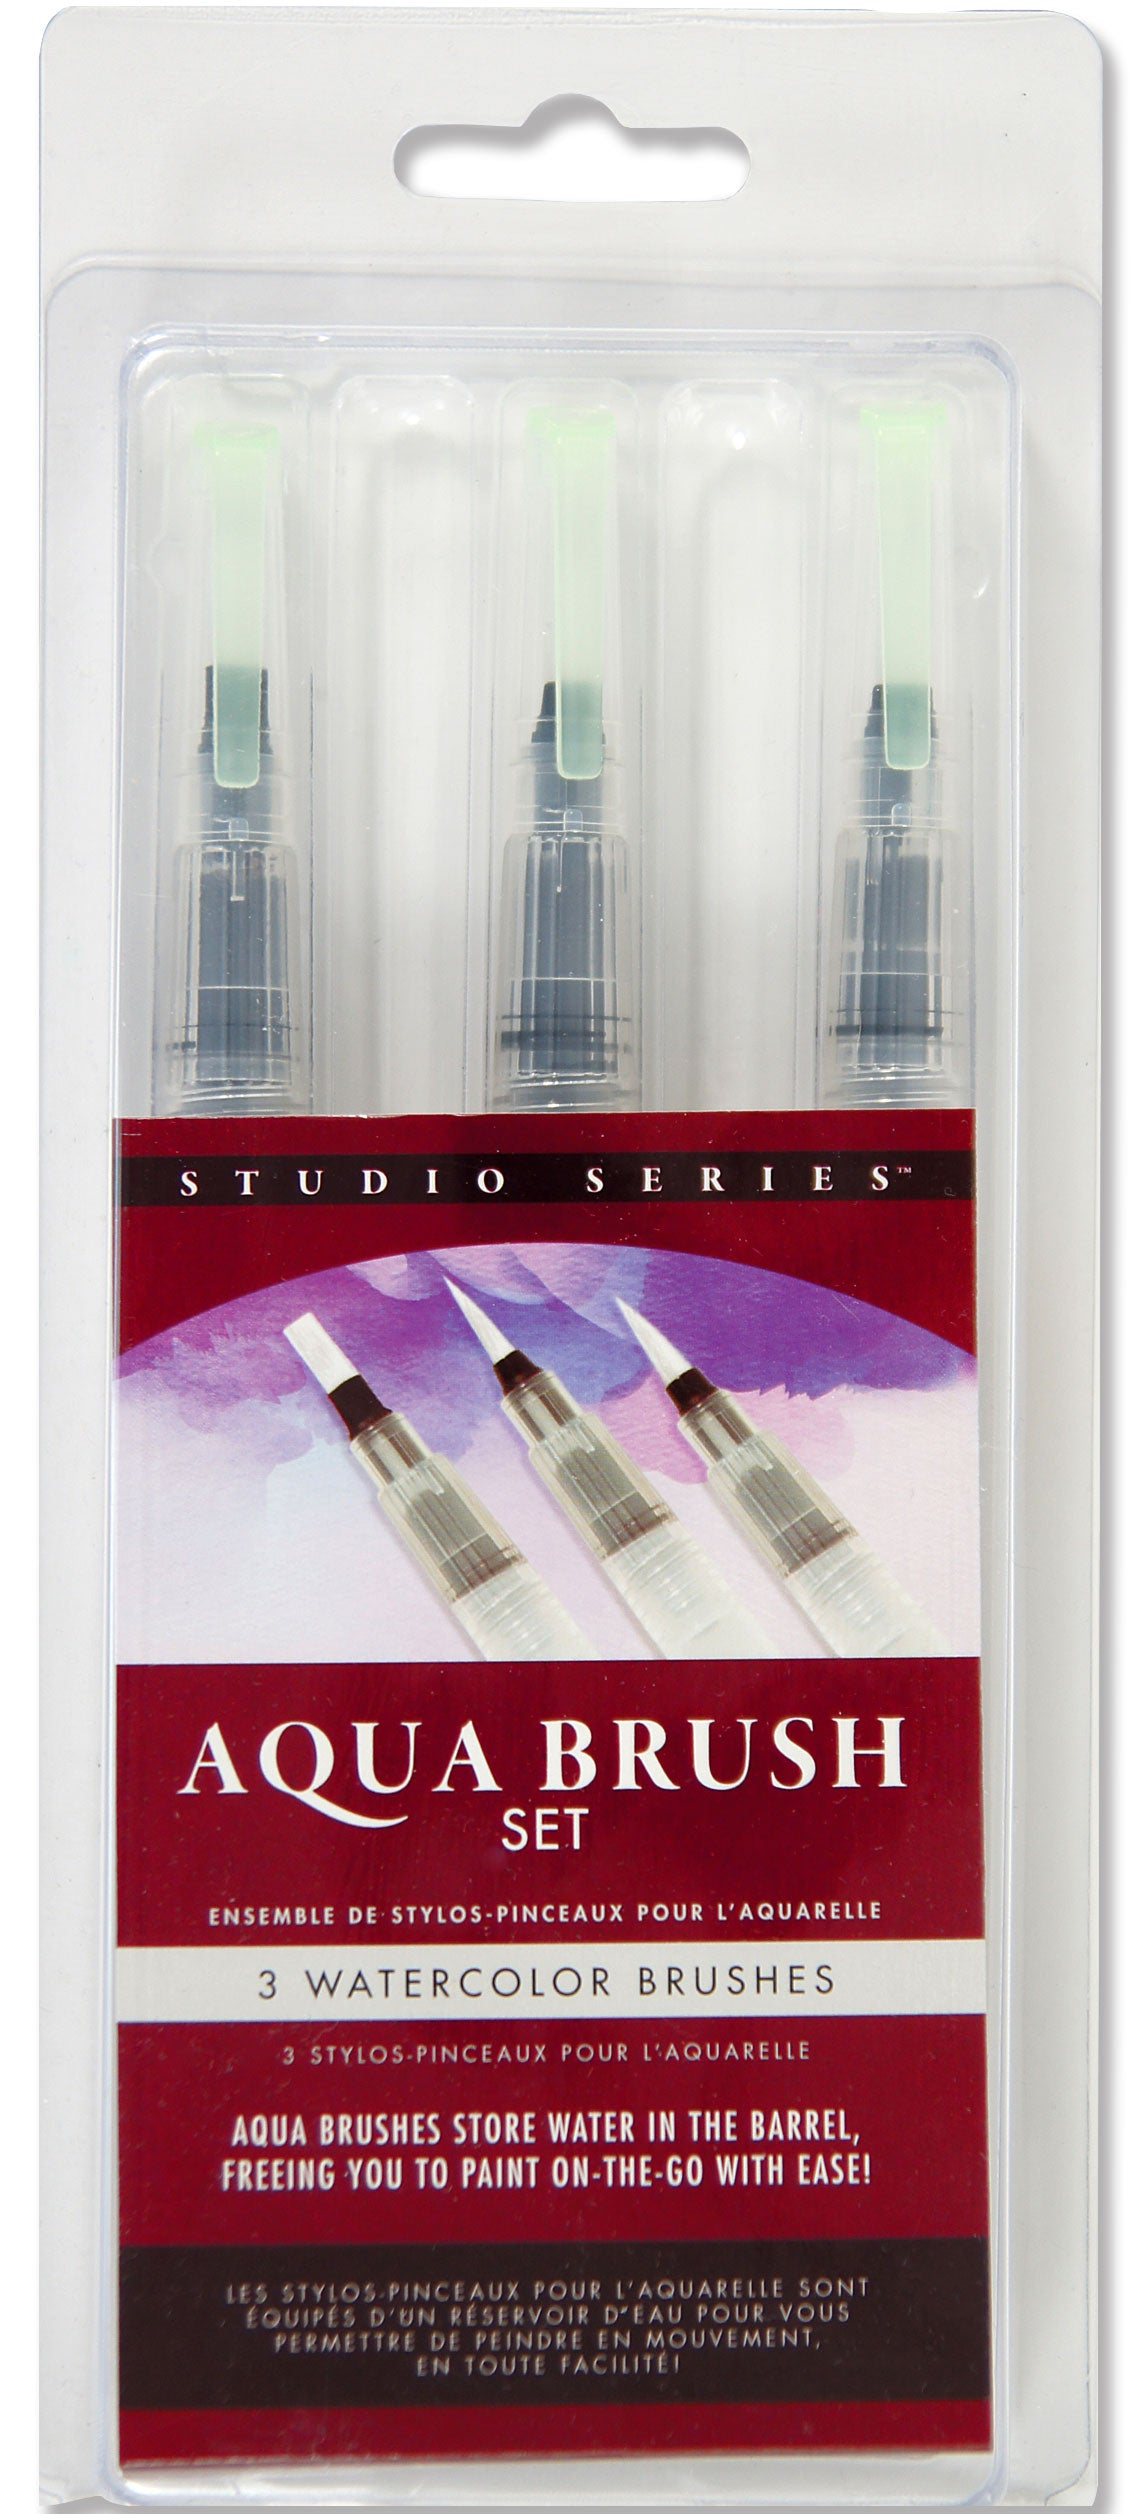 Studio Series Aqua Brushes - Heart of the Home PA